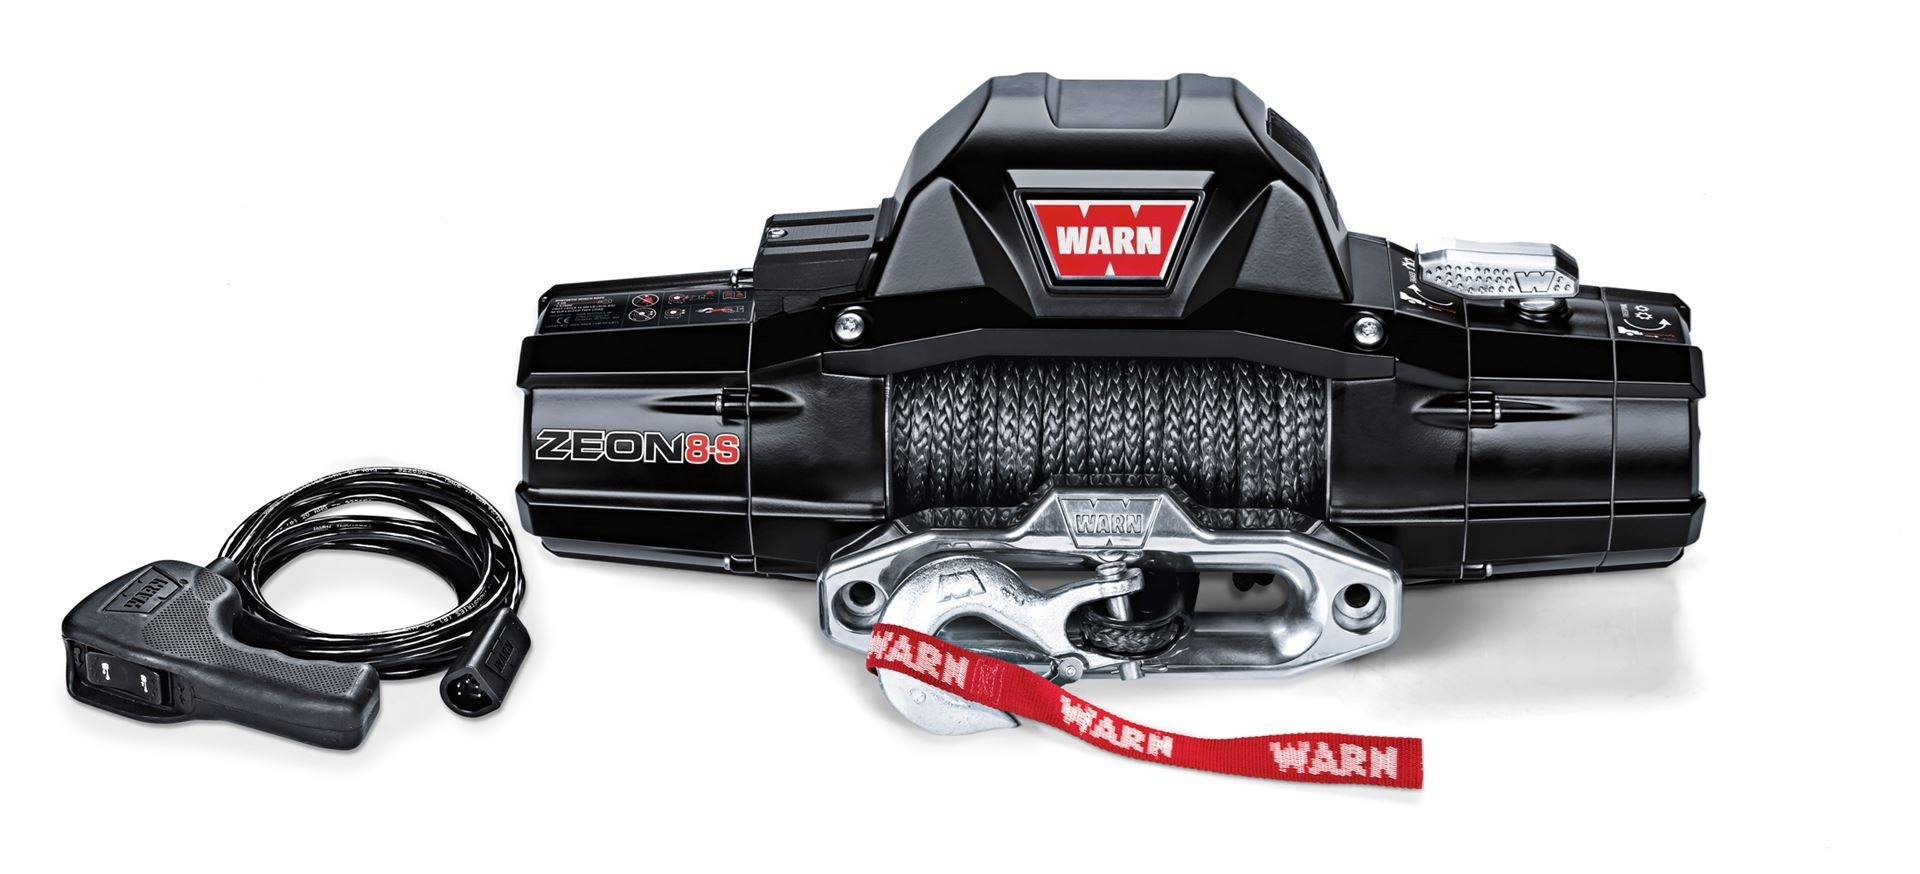 Warn 89305 ZEON 8-S WINCH with 100 feet Synthetic Rope and 8,000 lb Capacity